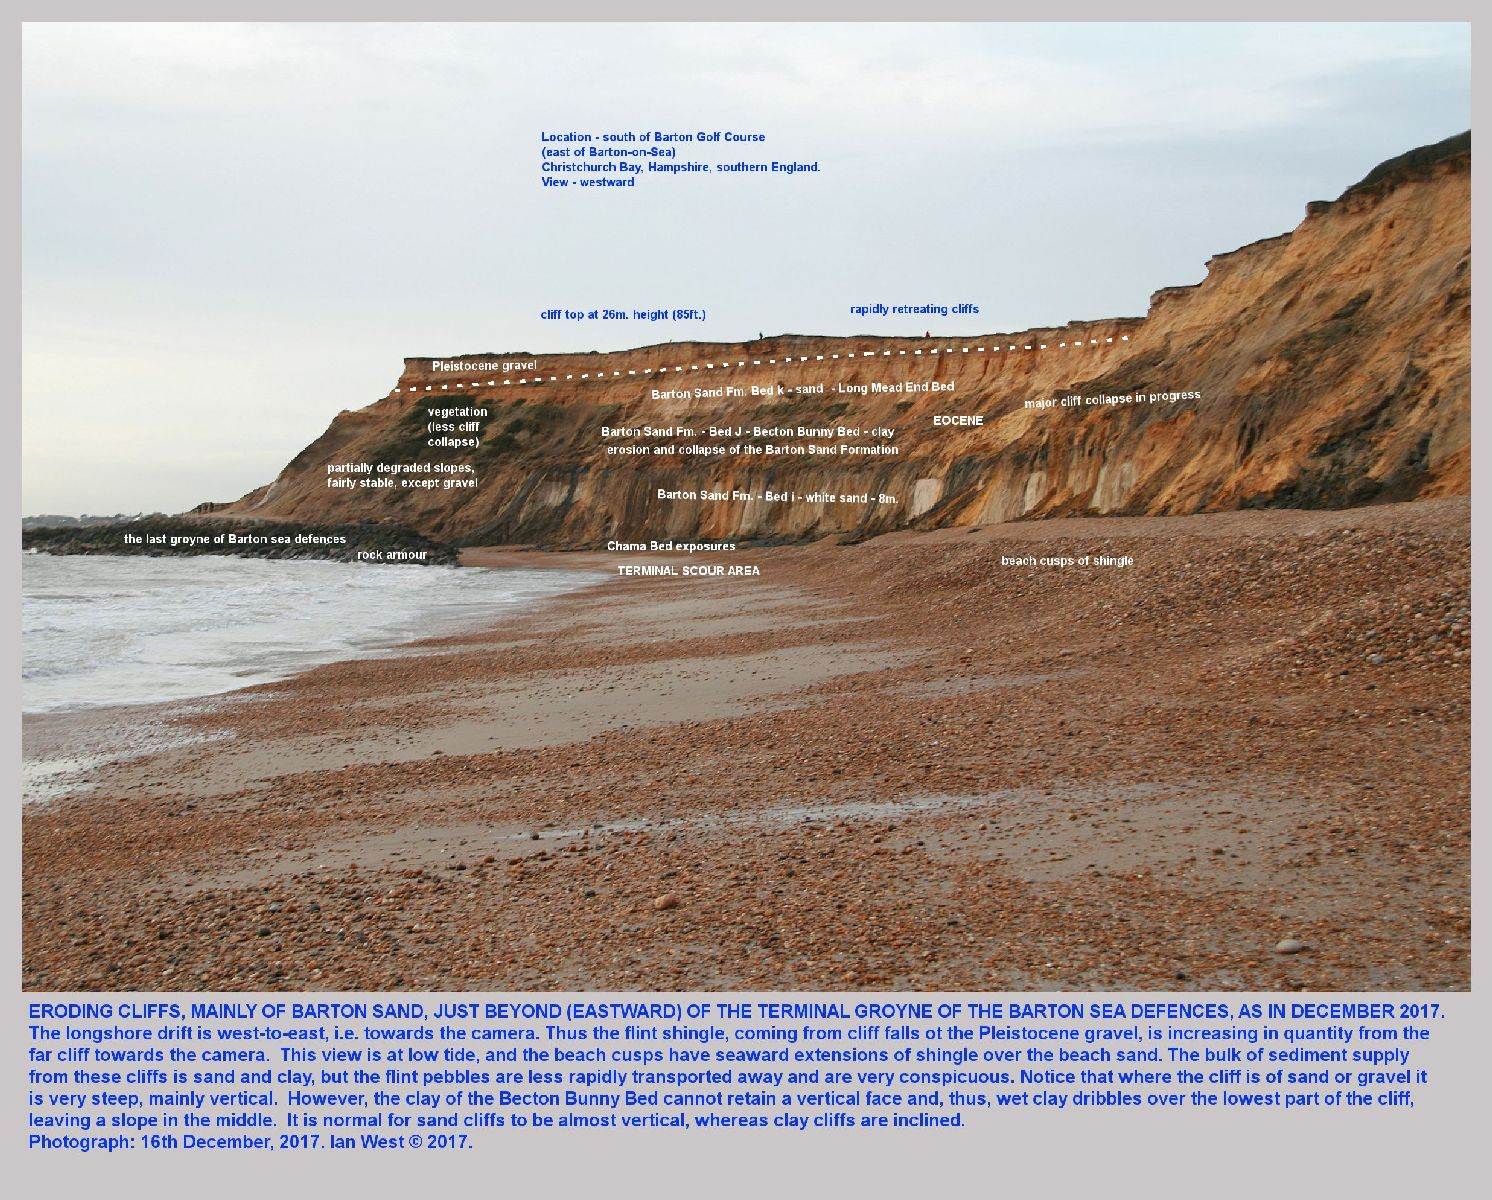 The Chama Bed of the Barton Sand Formation was exposed in December 2017, at the foot of the eroding re-entrant at the eastern end of the sea defences of Barton-on-Sea, Hampshire, a view from the beach